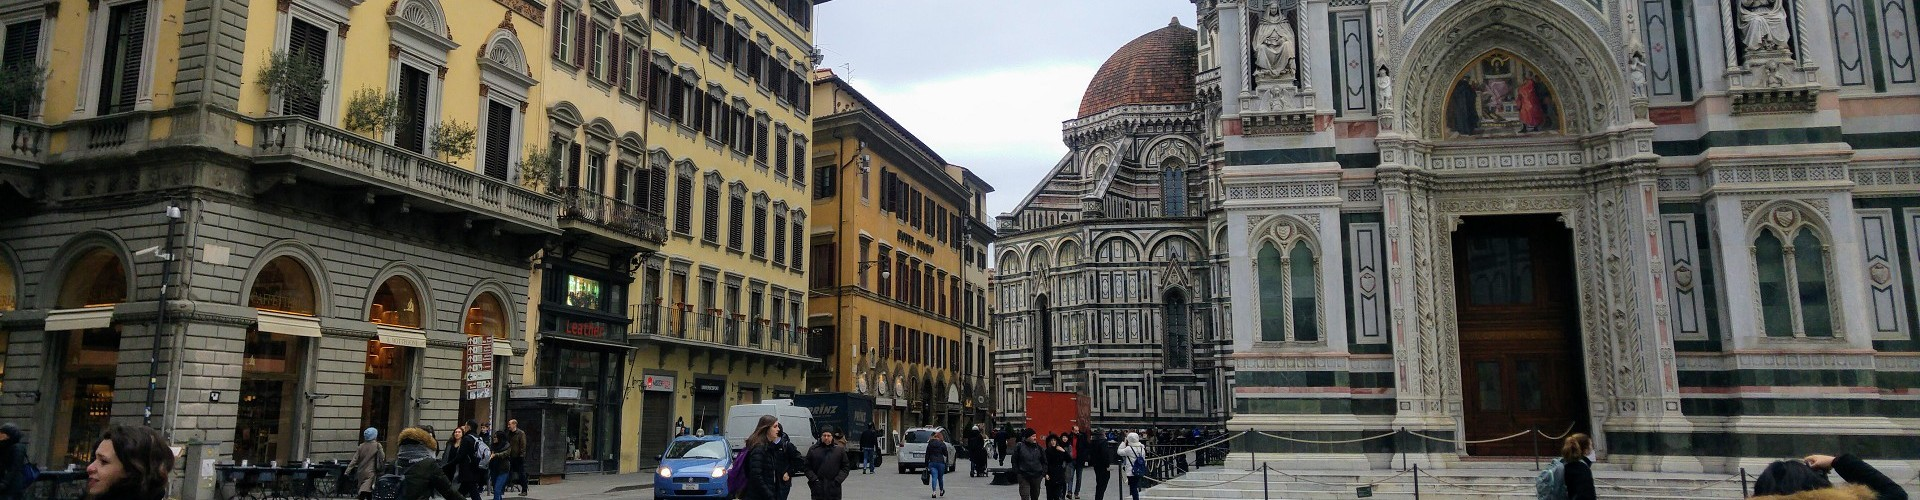 nice hotels in florence italy | hotels outside florence italy | self catering apartments florence